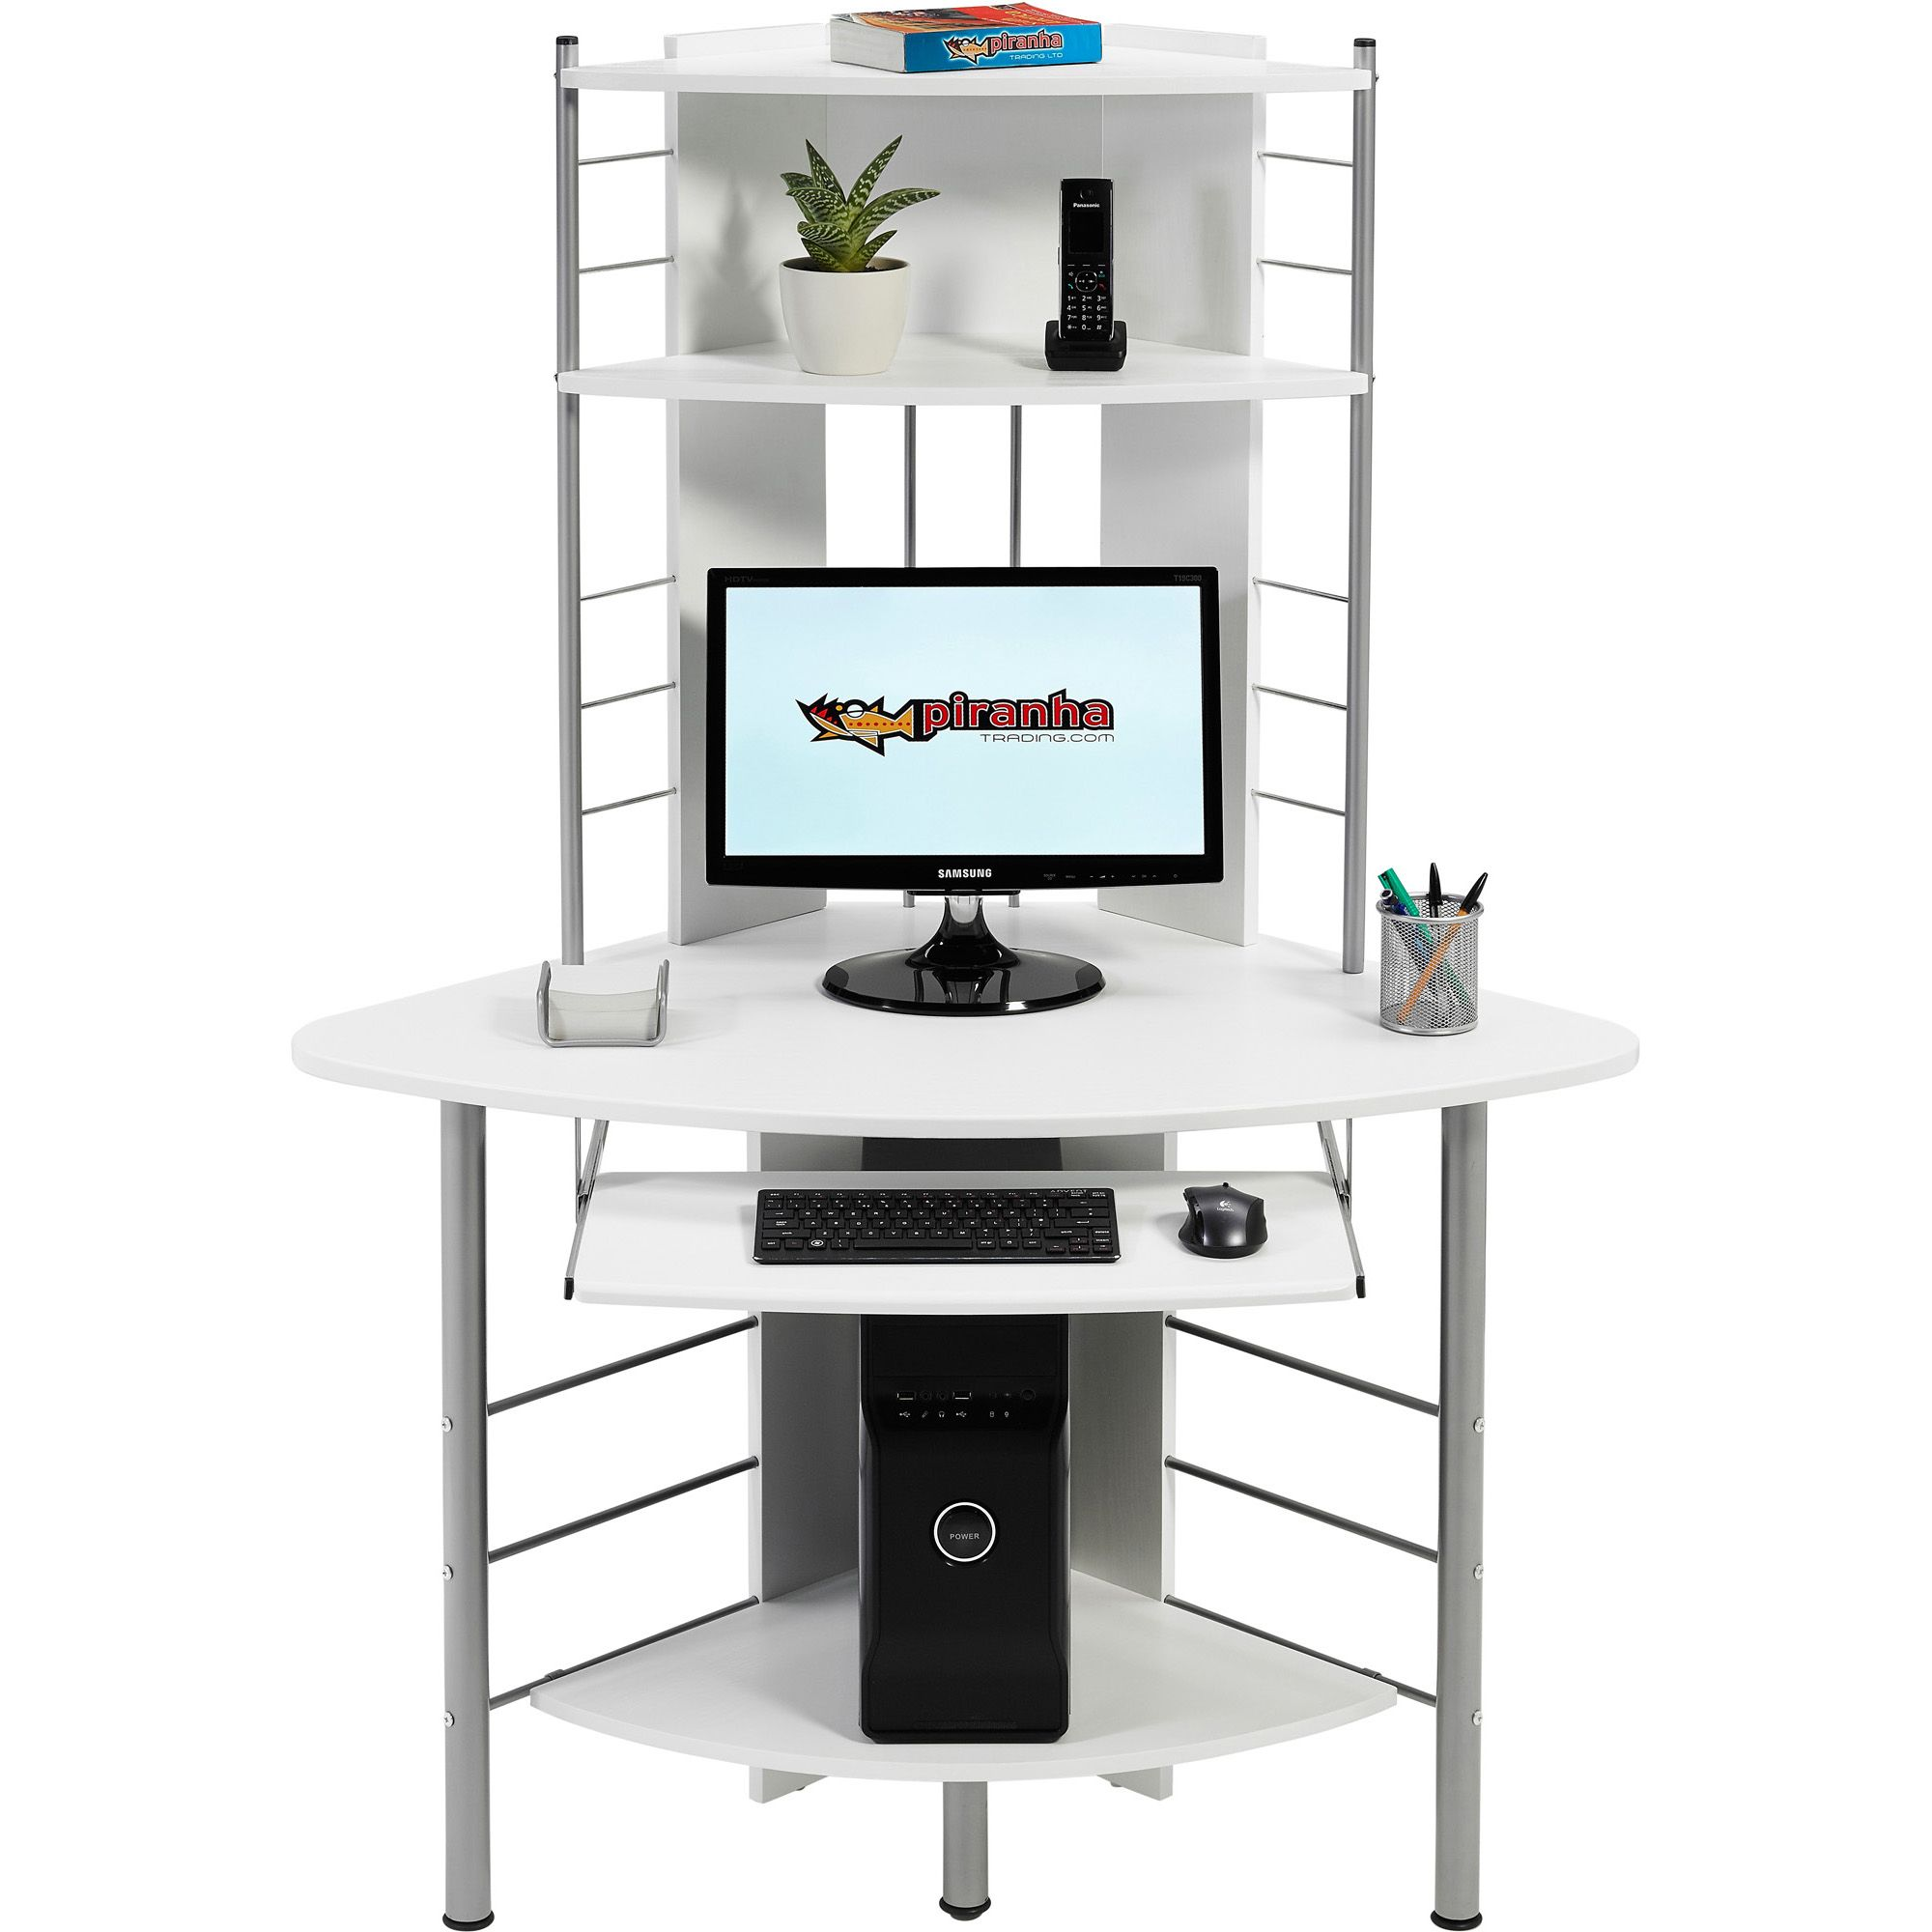 piranha quality compact corner computer desk with shelves for home office pc 8s http